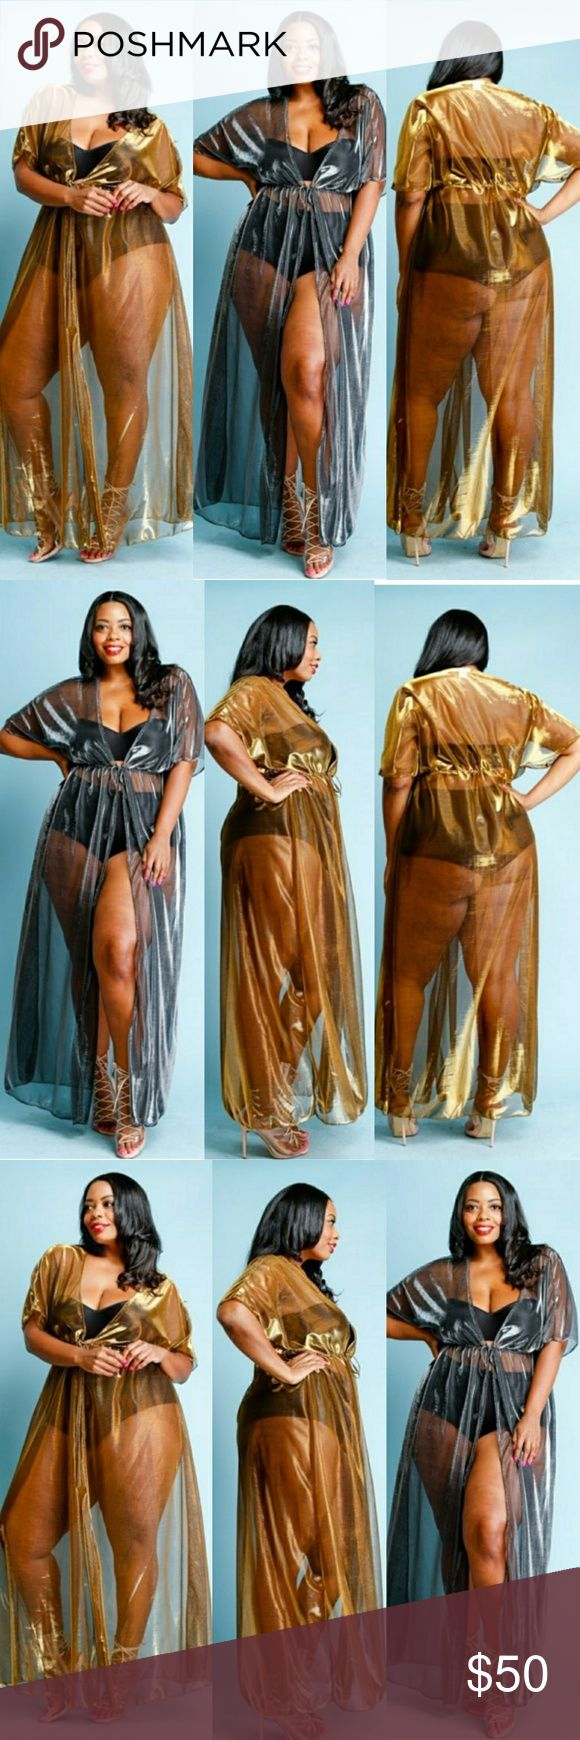 Plus Size Metallic Cocktail Long Sheer Robe Plus Size Metallic Cocktail Long Sheer Robe Category:?Jackets Fabric:?POLYESTER Content:?50% Polyester, 50% Metallic Dresses Maxi